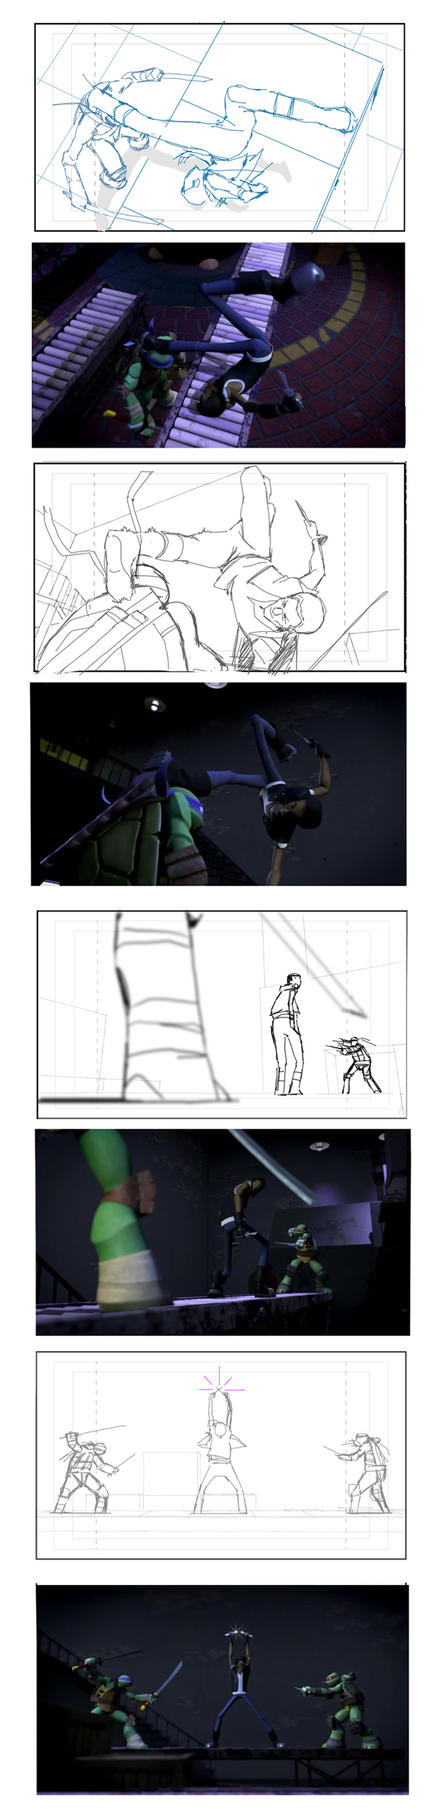 TMNT Season 1 Storyboards by Konjur